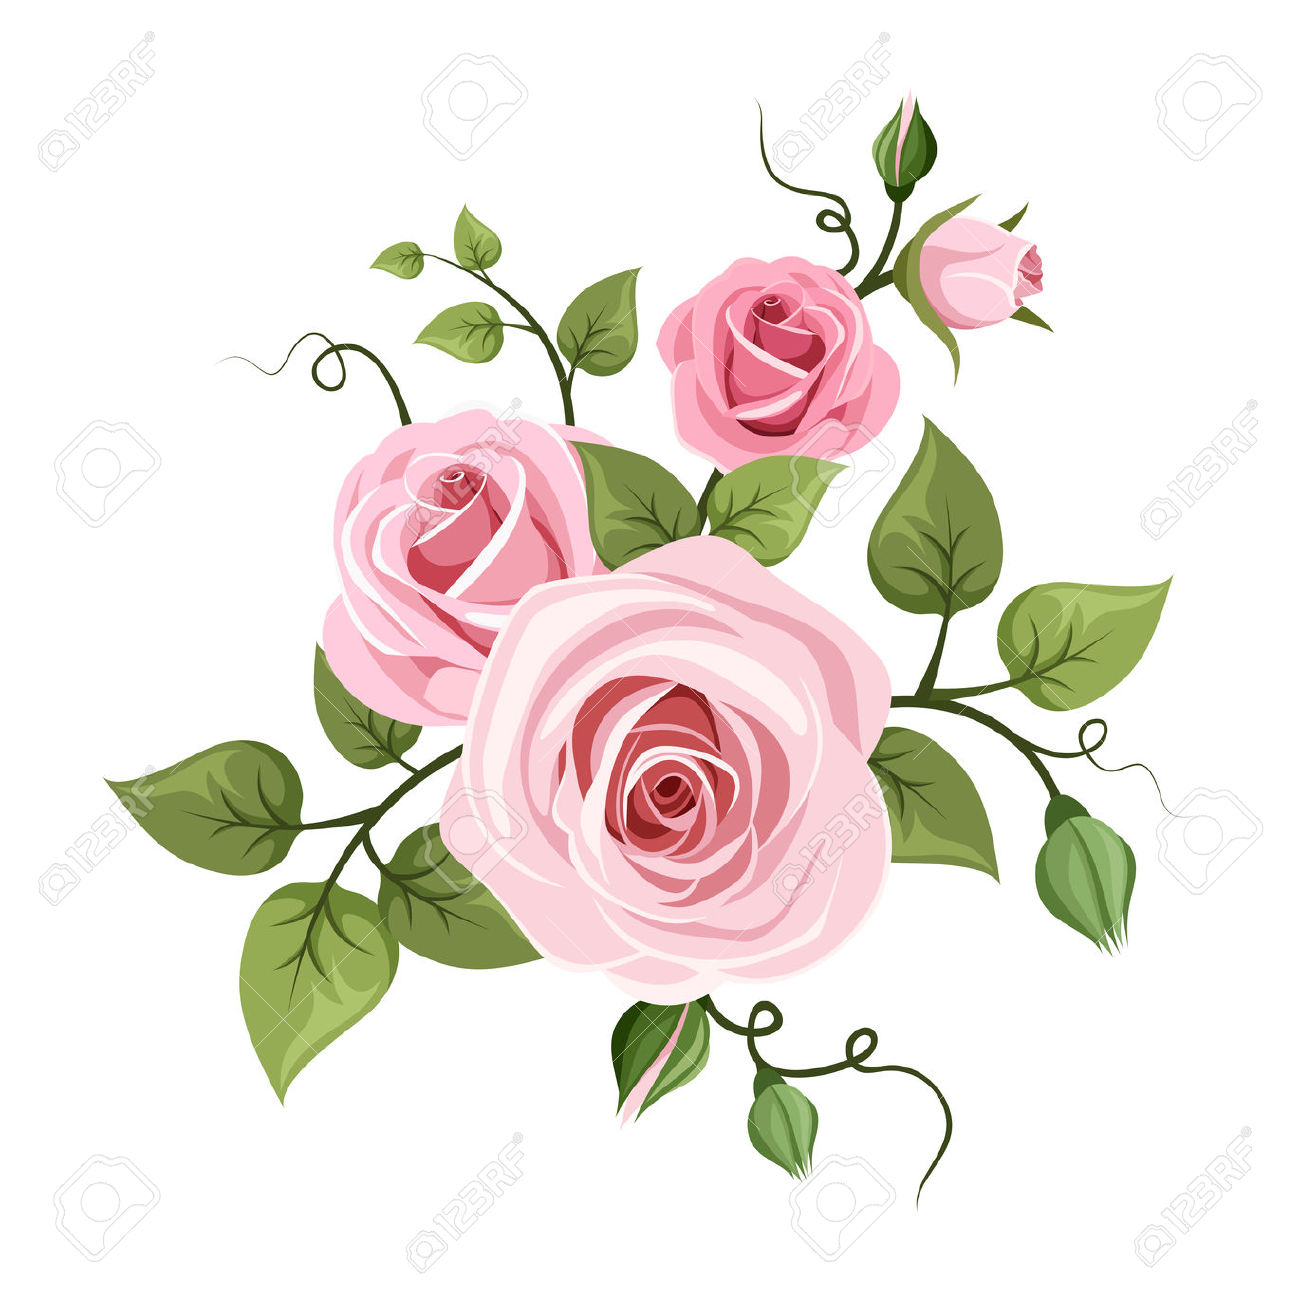 Pink Roses Illustration Royalty Free Cliparts, Vectors, And Stock.